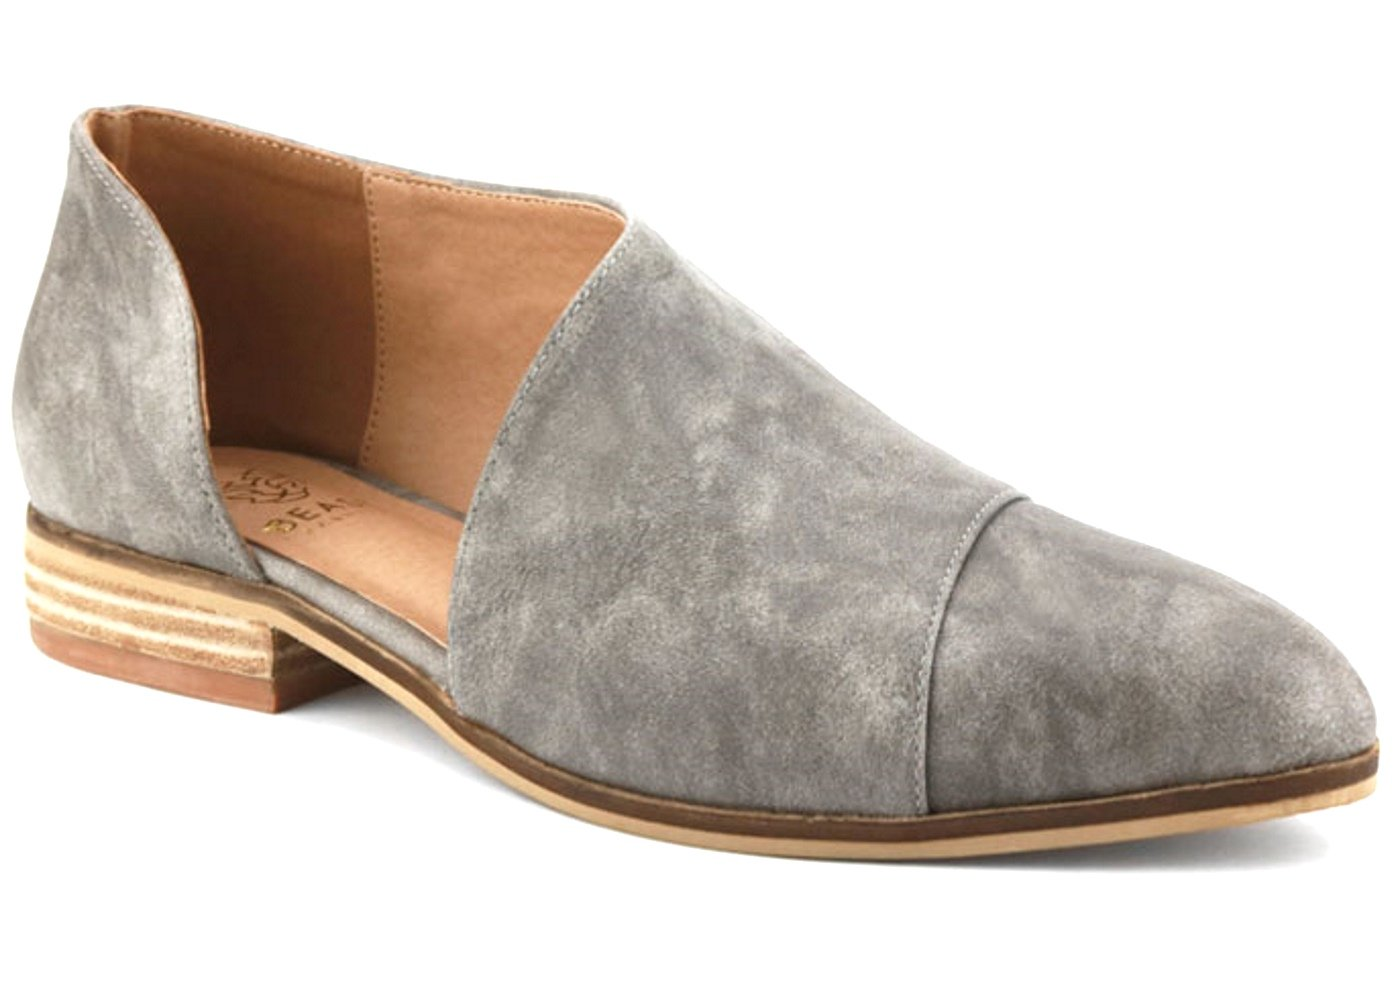 Beast Fashion Carter-05 Women D'Orsay Slip On Pointy Cap Toe Extreme Cut Out Ankle Flat Bootie Grey (7)